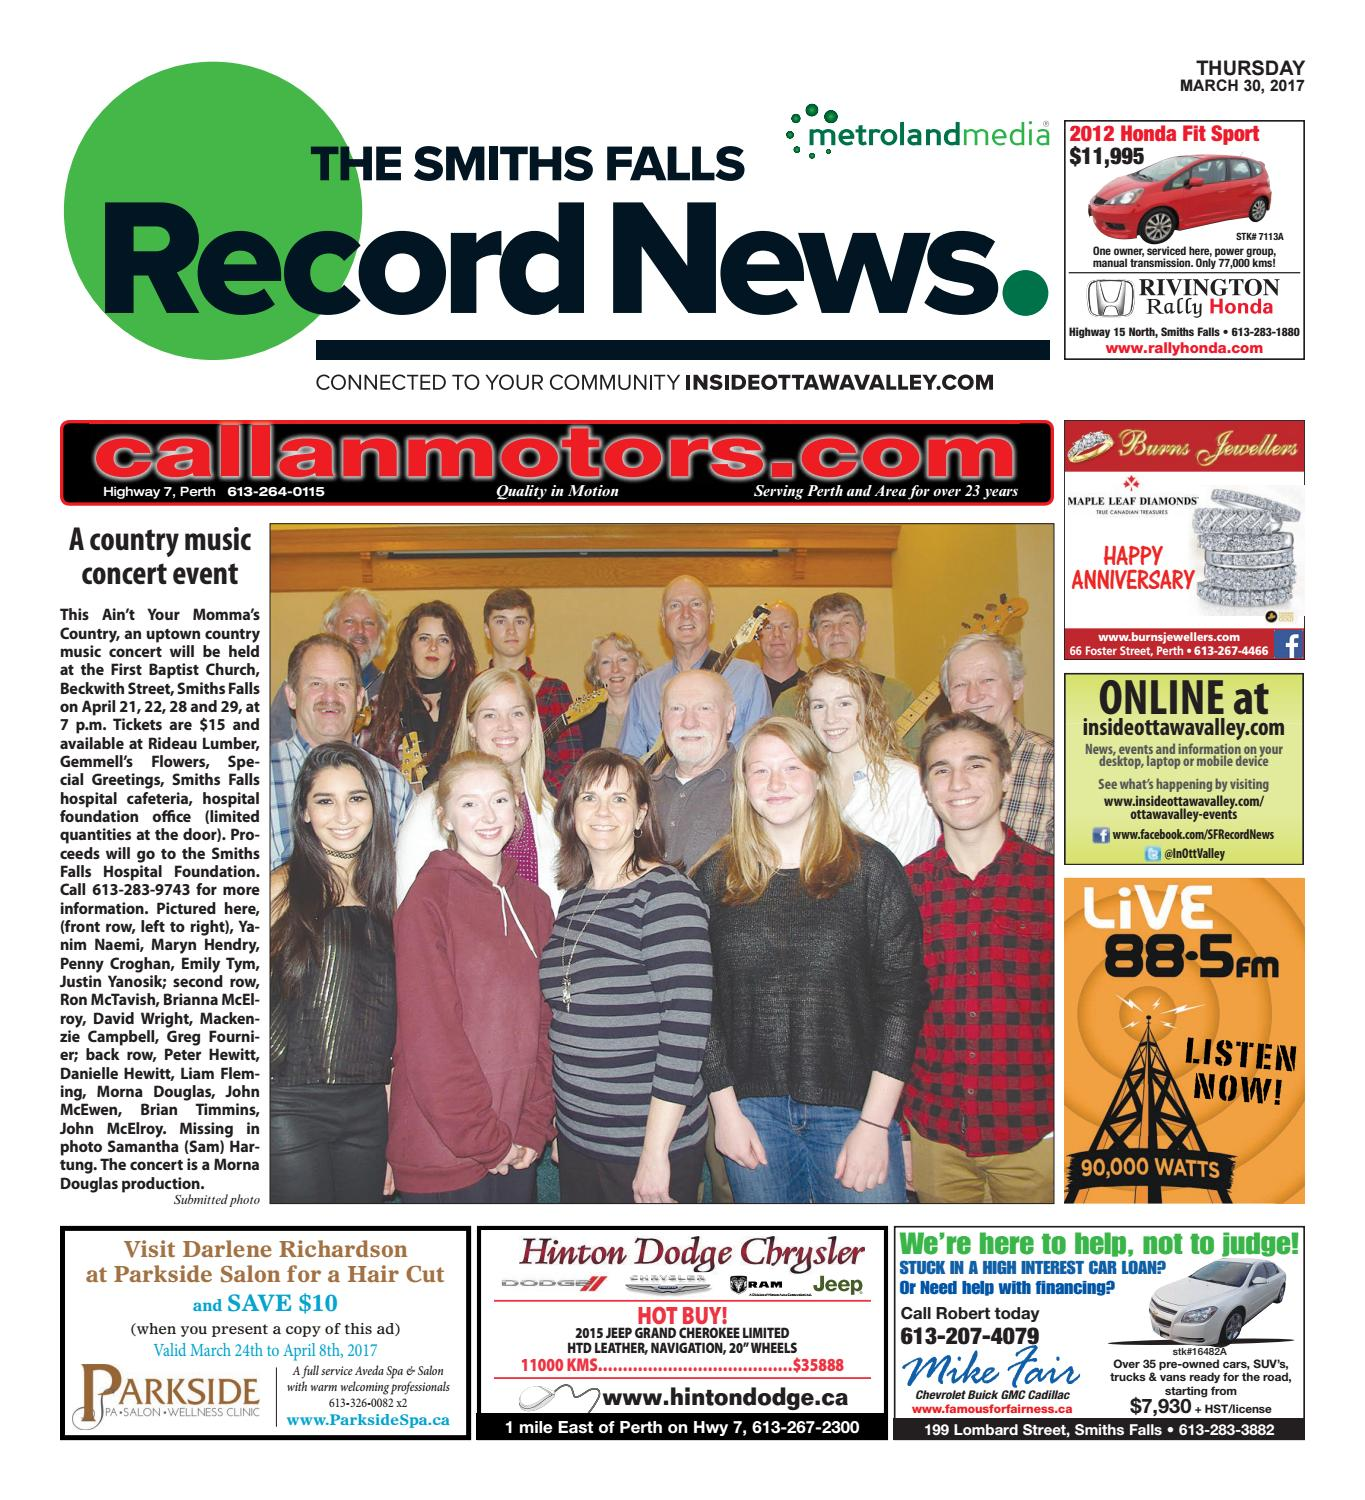 Smithsfalls033017 by Metroland East - Smiths Falls Record News - issuu 7c3f66e68